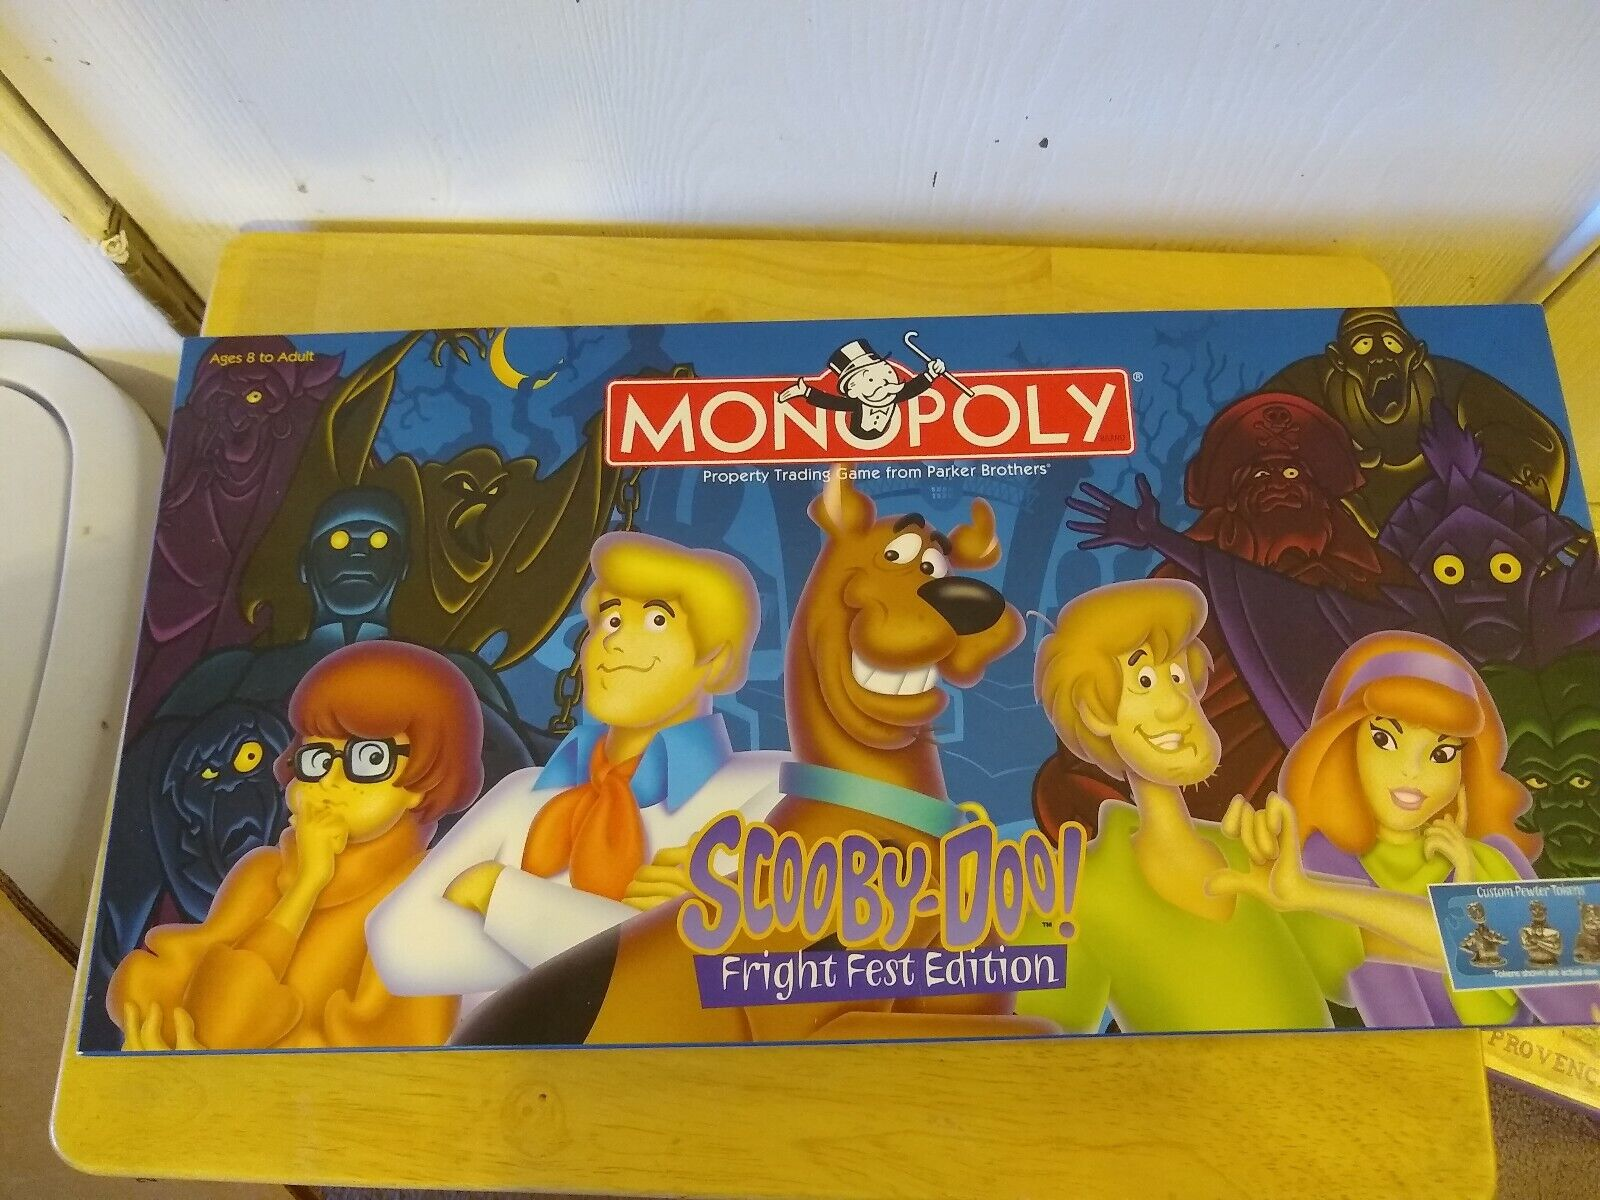 Monopoly Scooby-Doo Fright Fest Edition Property Trading Game